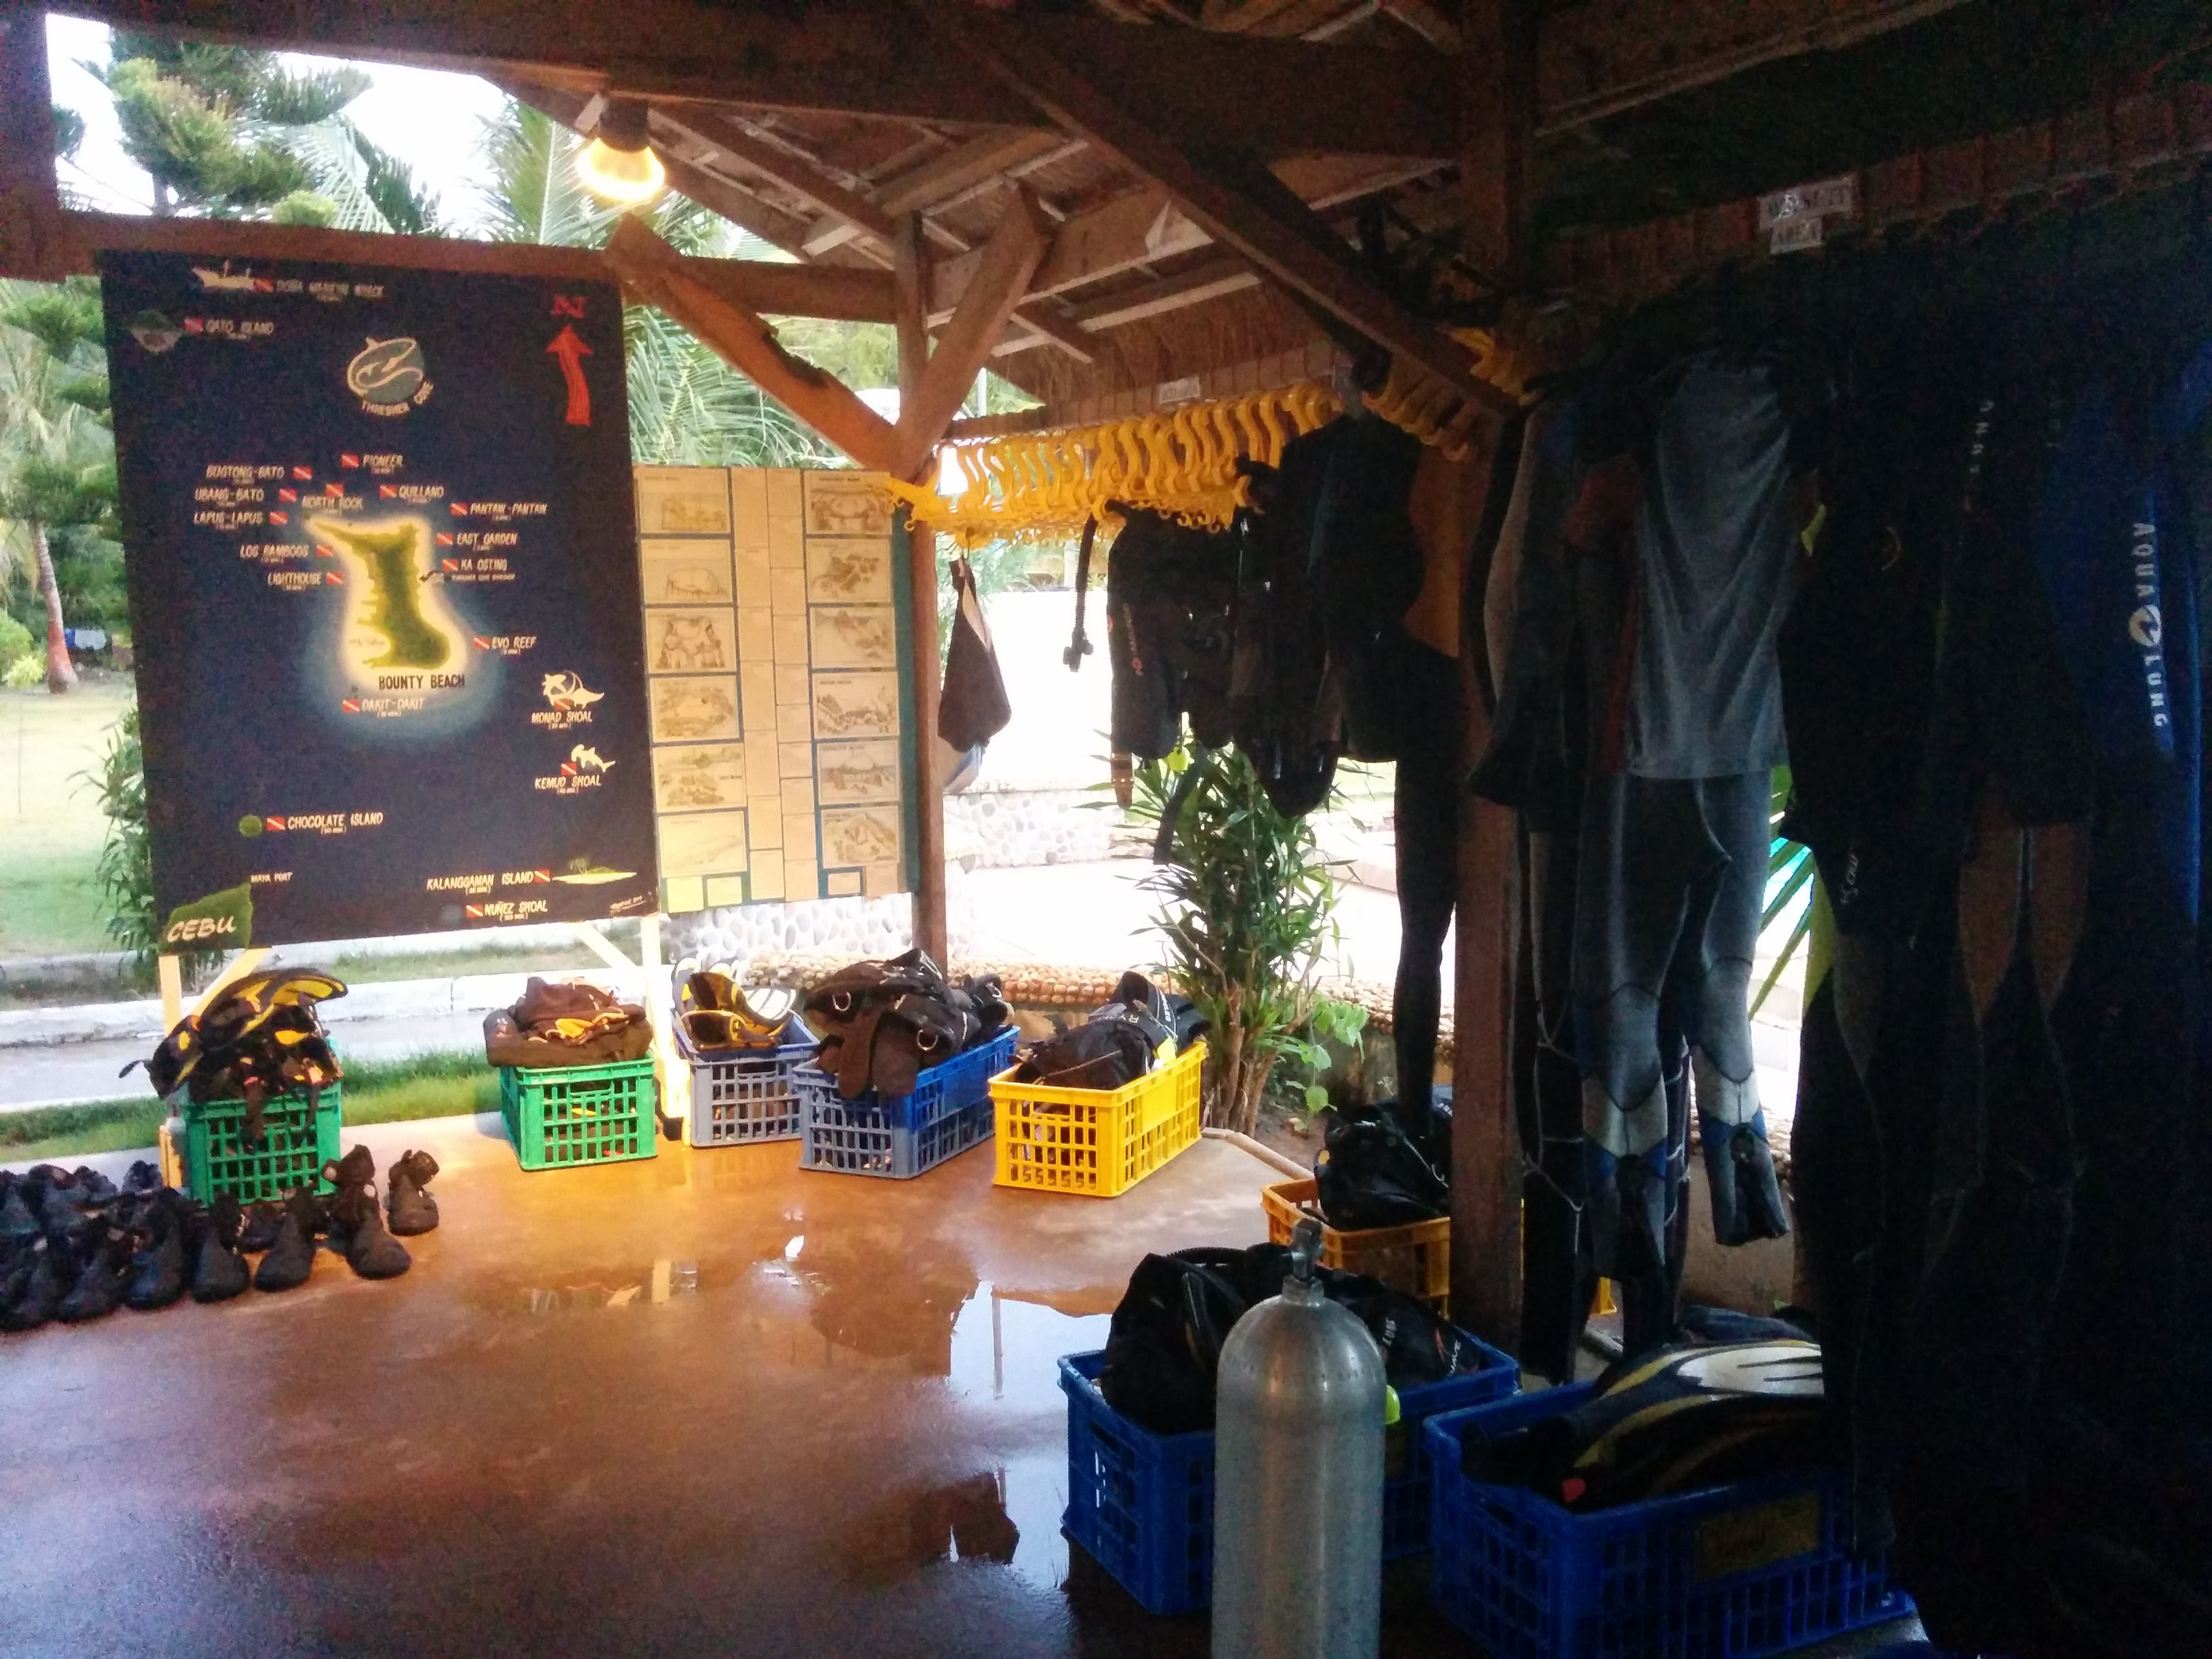 Thresher Cove's dive shop